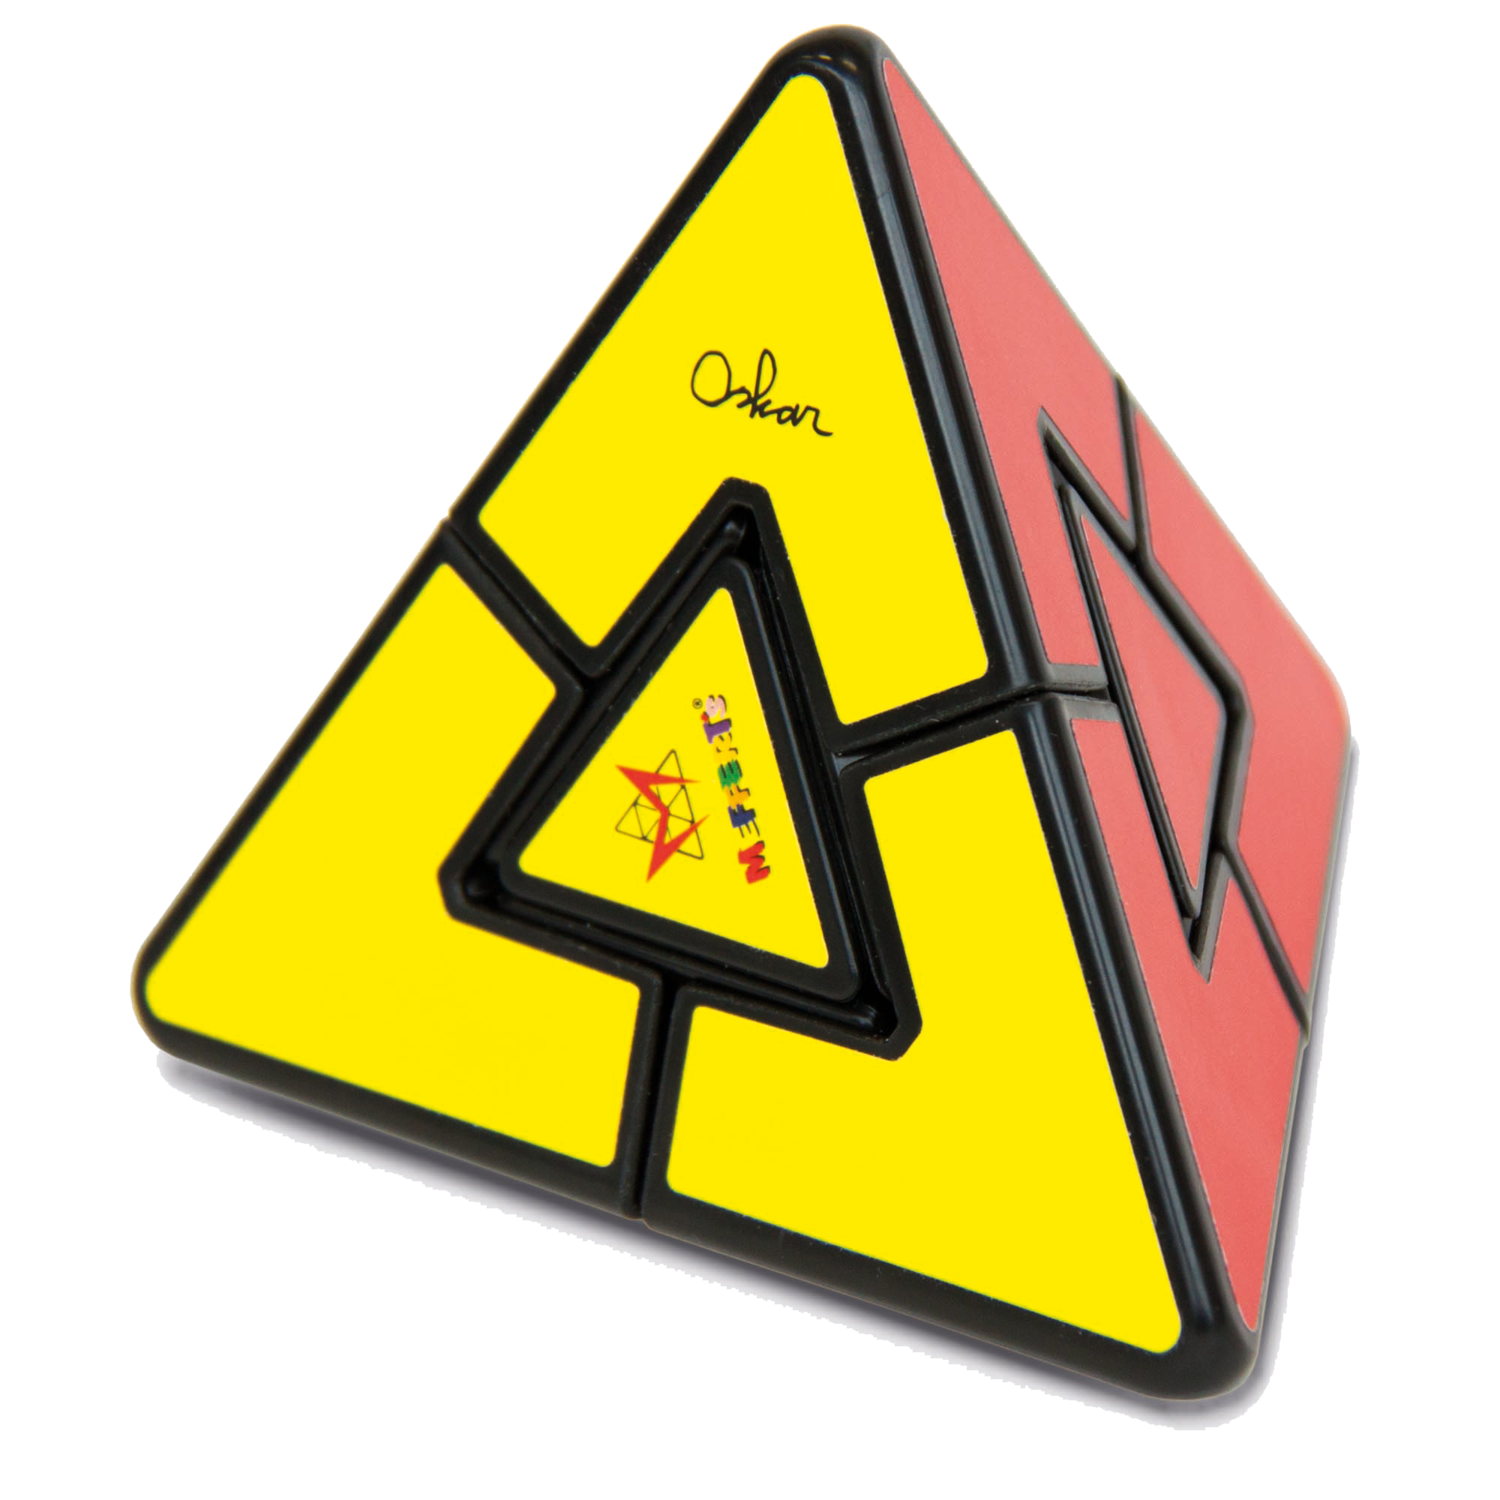 pyraminx_duo.Solved.OOB.png